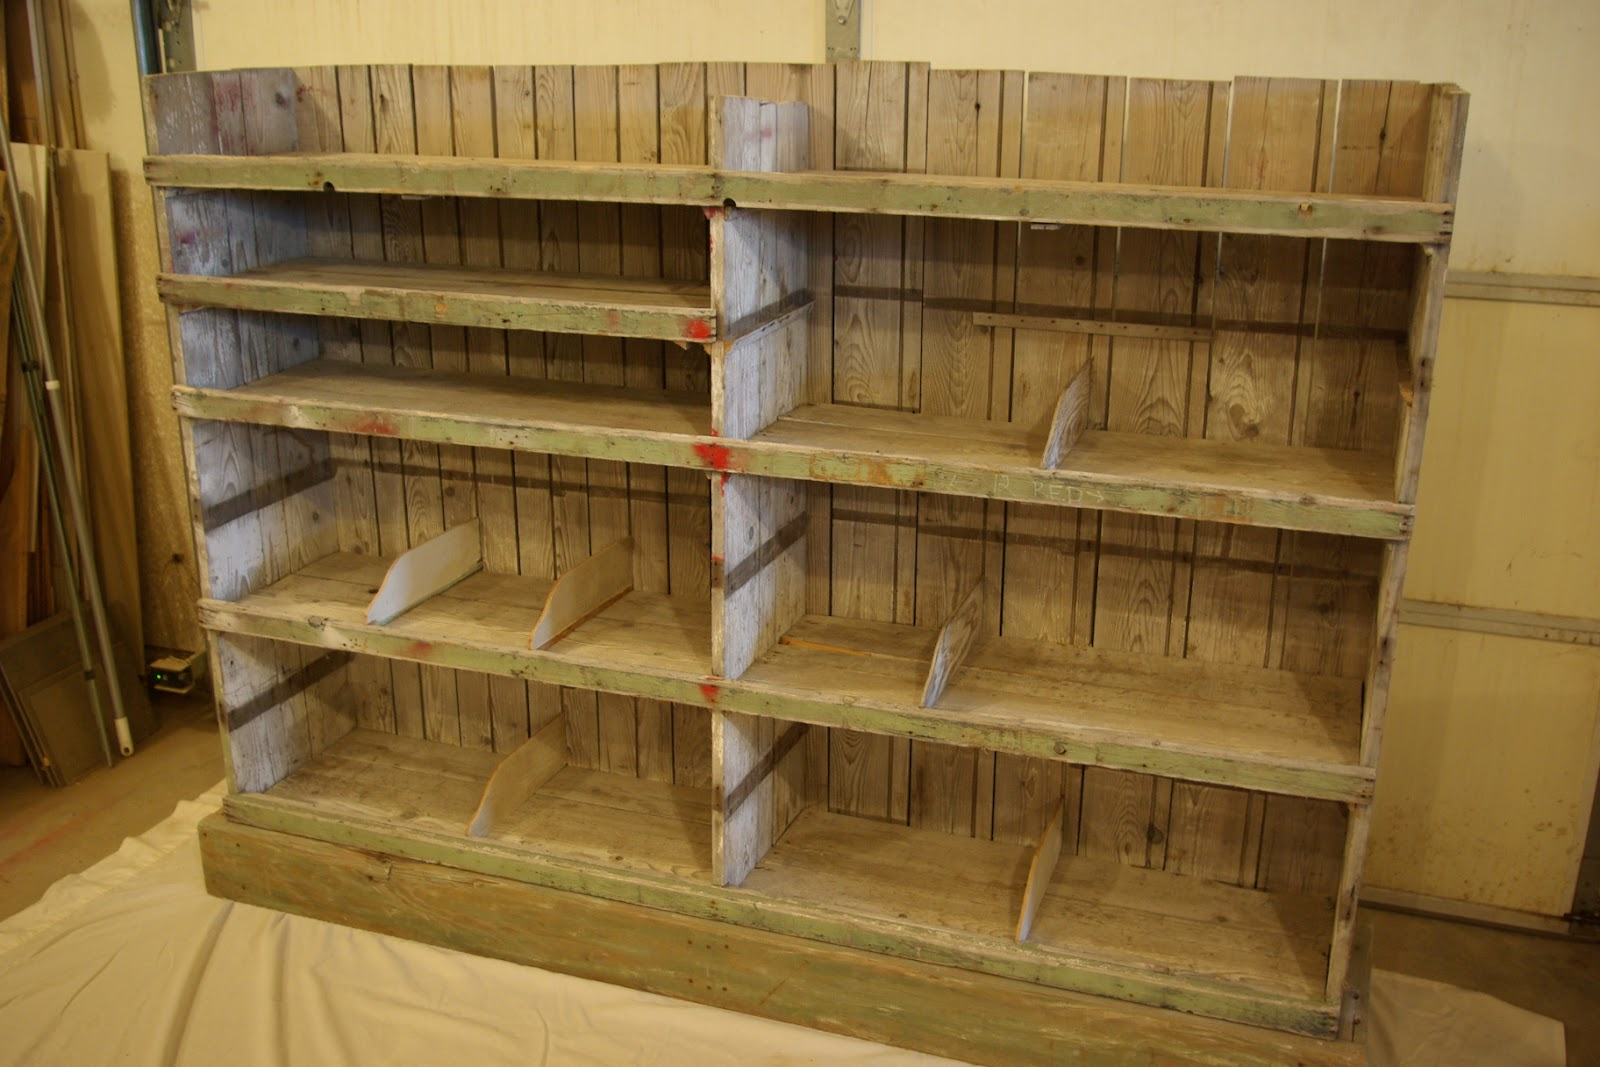 Marvelous photograph of Reclaimed Rustics: Rustic Barn Wood Bookcase with #412B10 color and 1600x1067 pixels